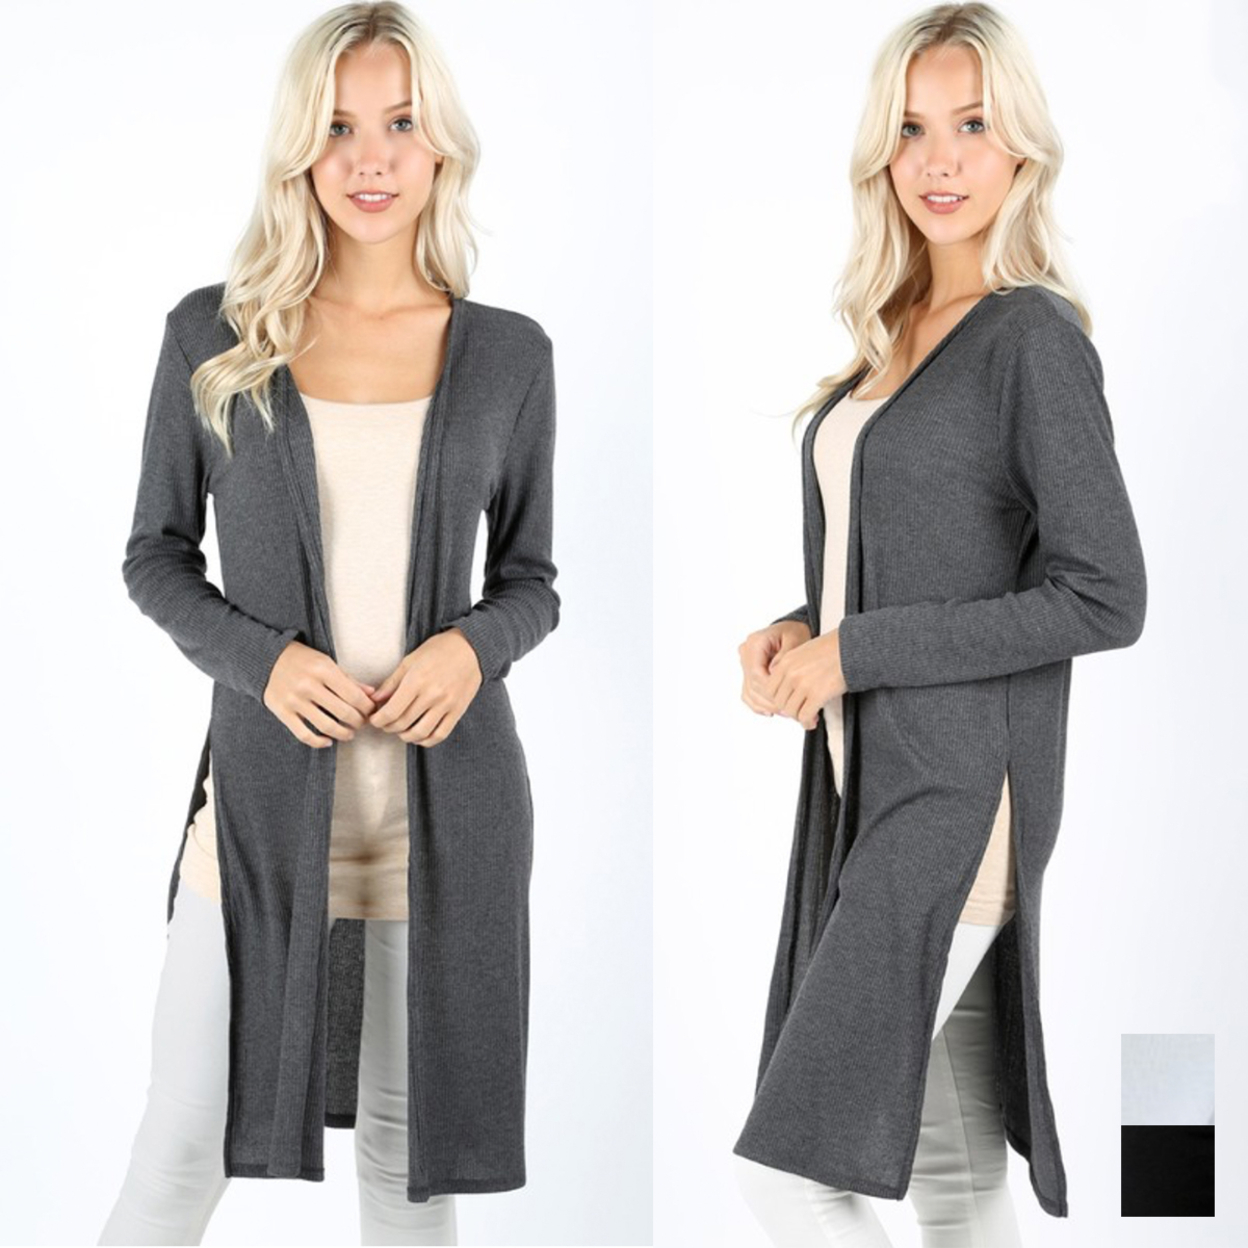 Ribbed Side Slit Cardigan - Dark Gray, Small (2-4) 5978e9722b59ca302a382c32